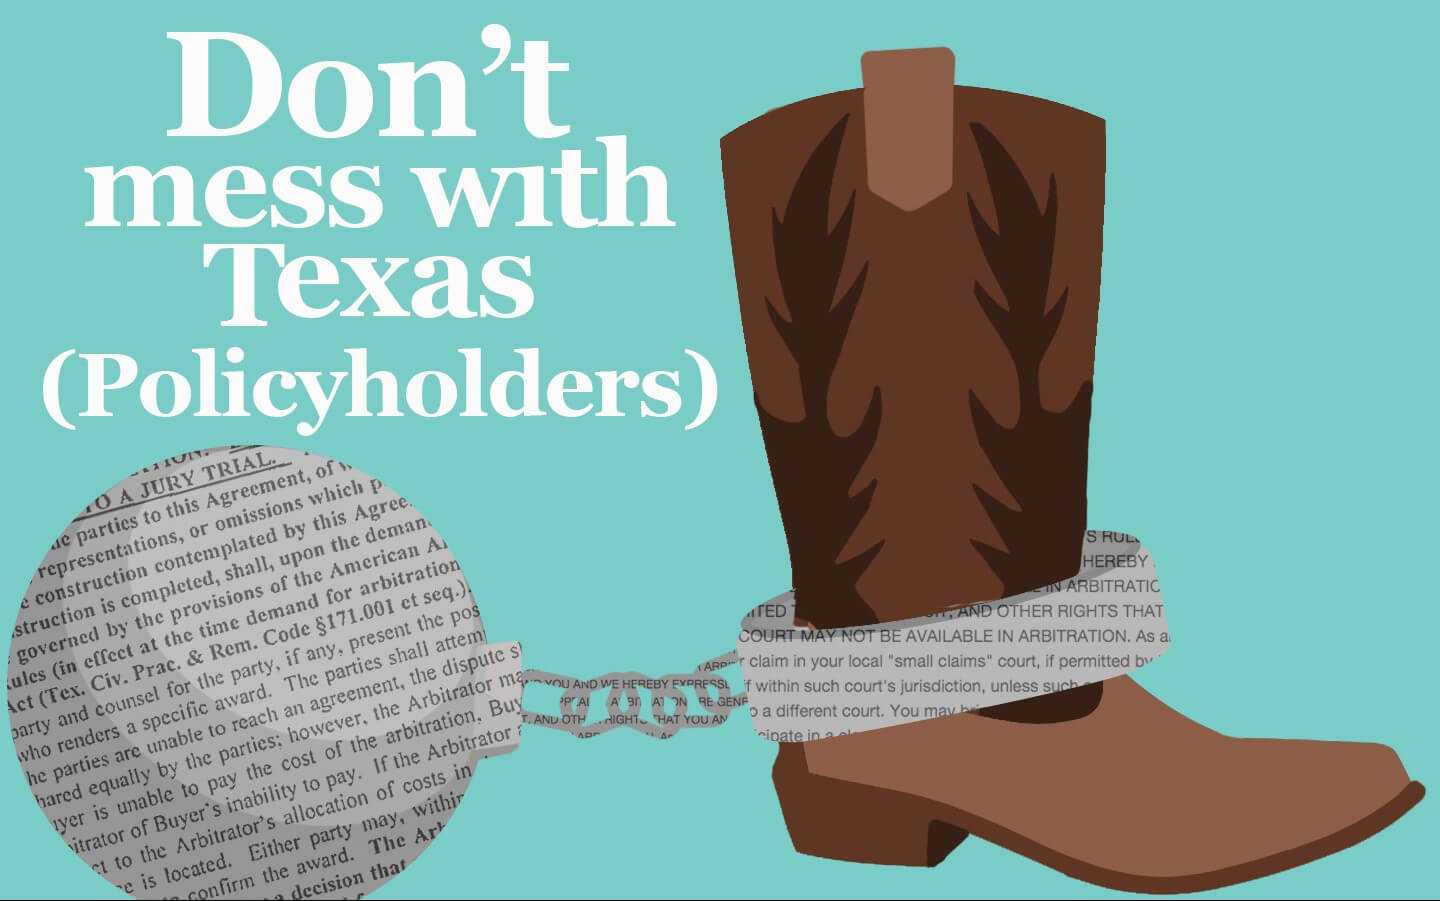 Texas Policyholders Succeed In Forced Arbitration Gambit by the Texas Insurance Industry